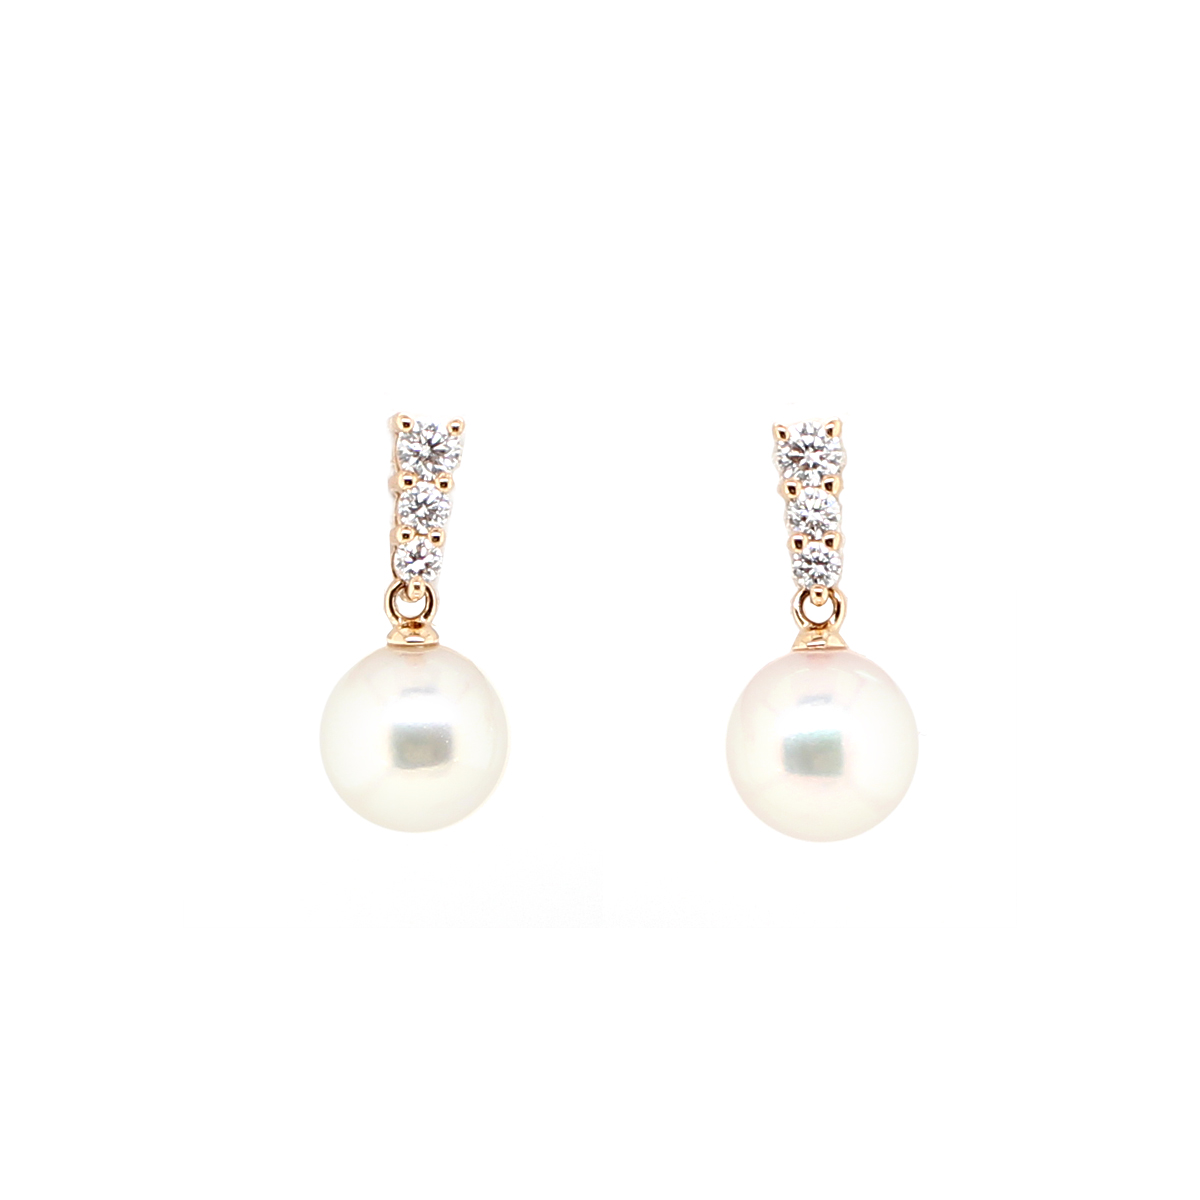 Mikimoto 18 Karat Rose Gold Diamond and Pearl Earrings